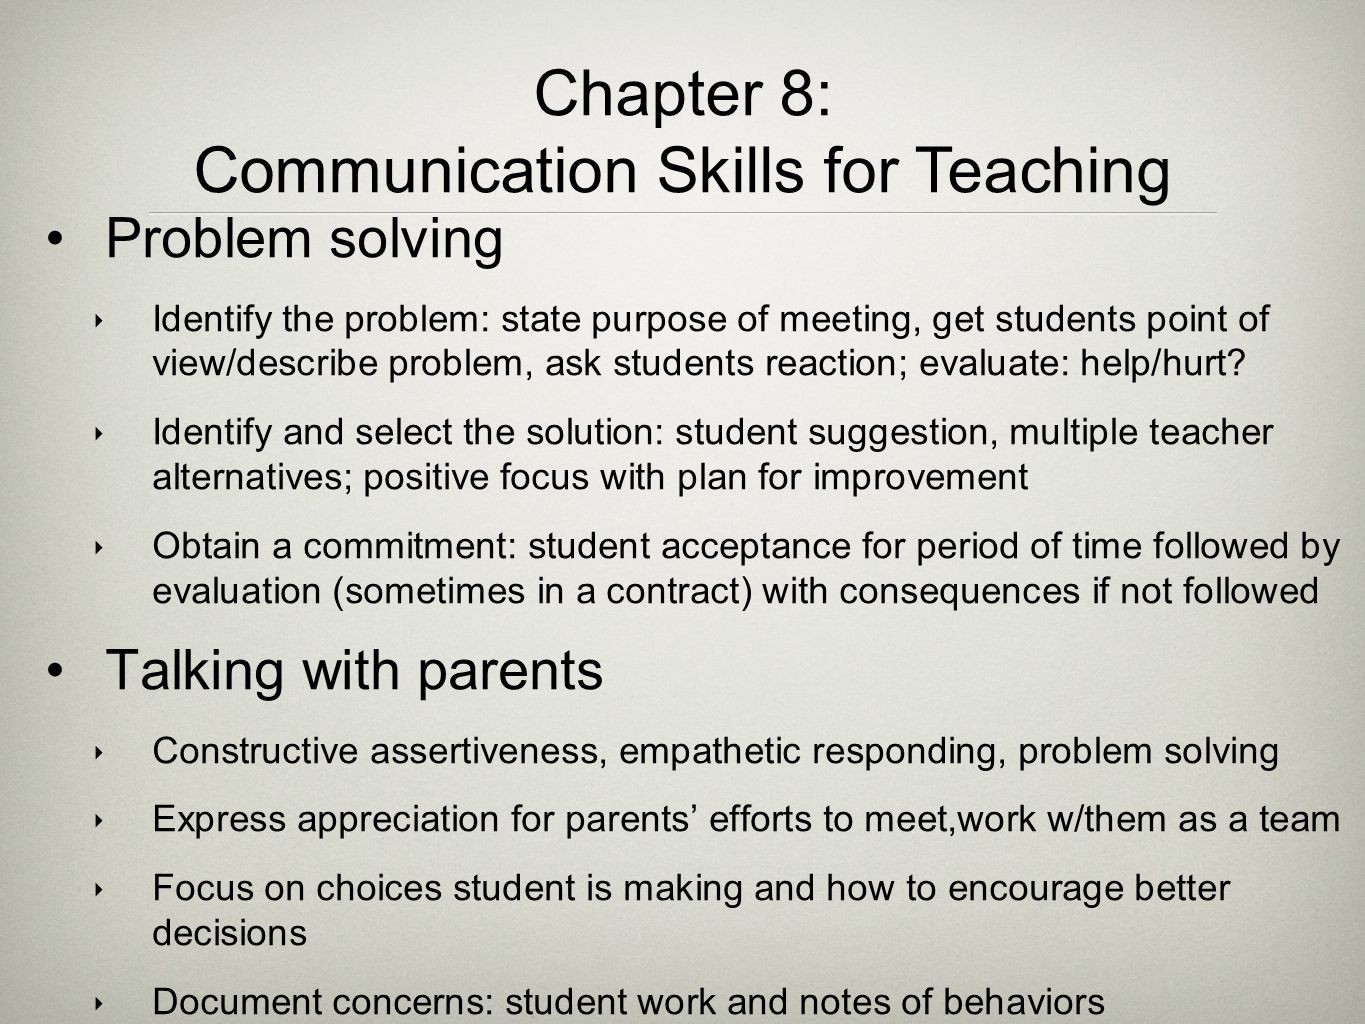 Communication Skills for Teaching